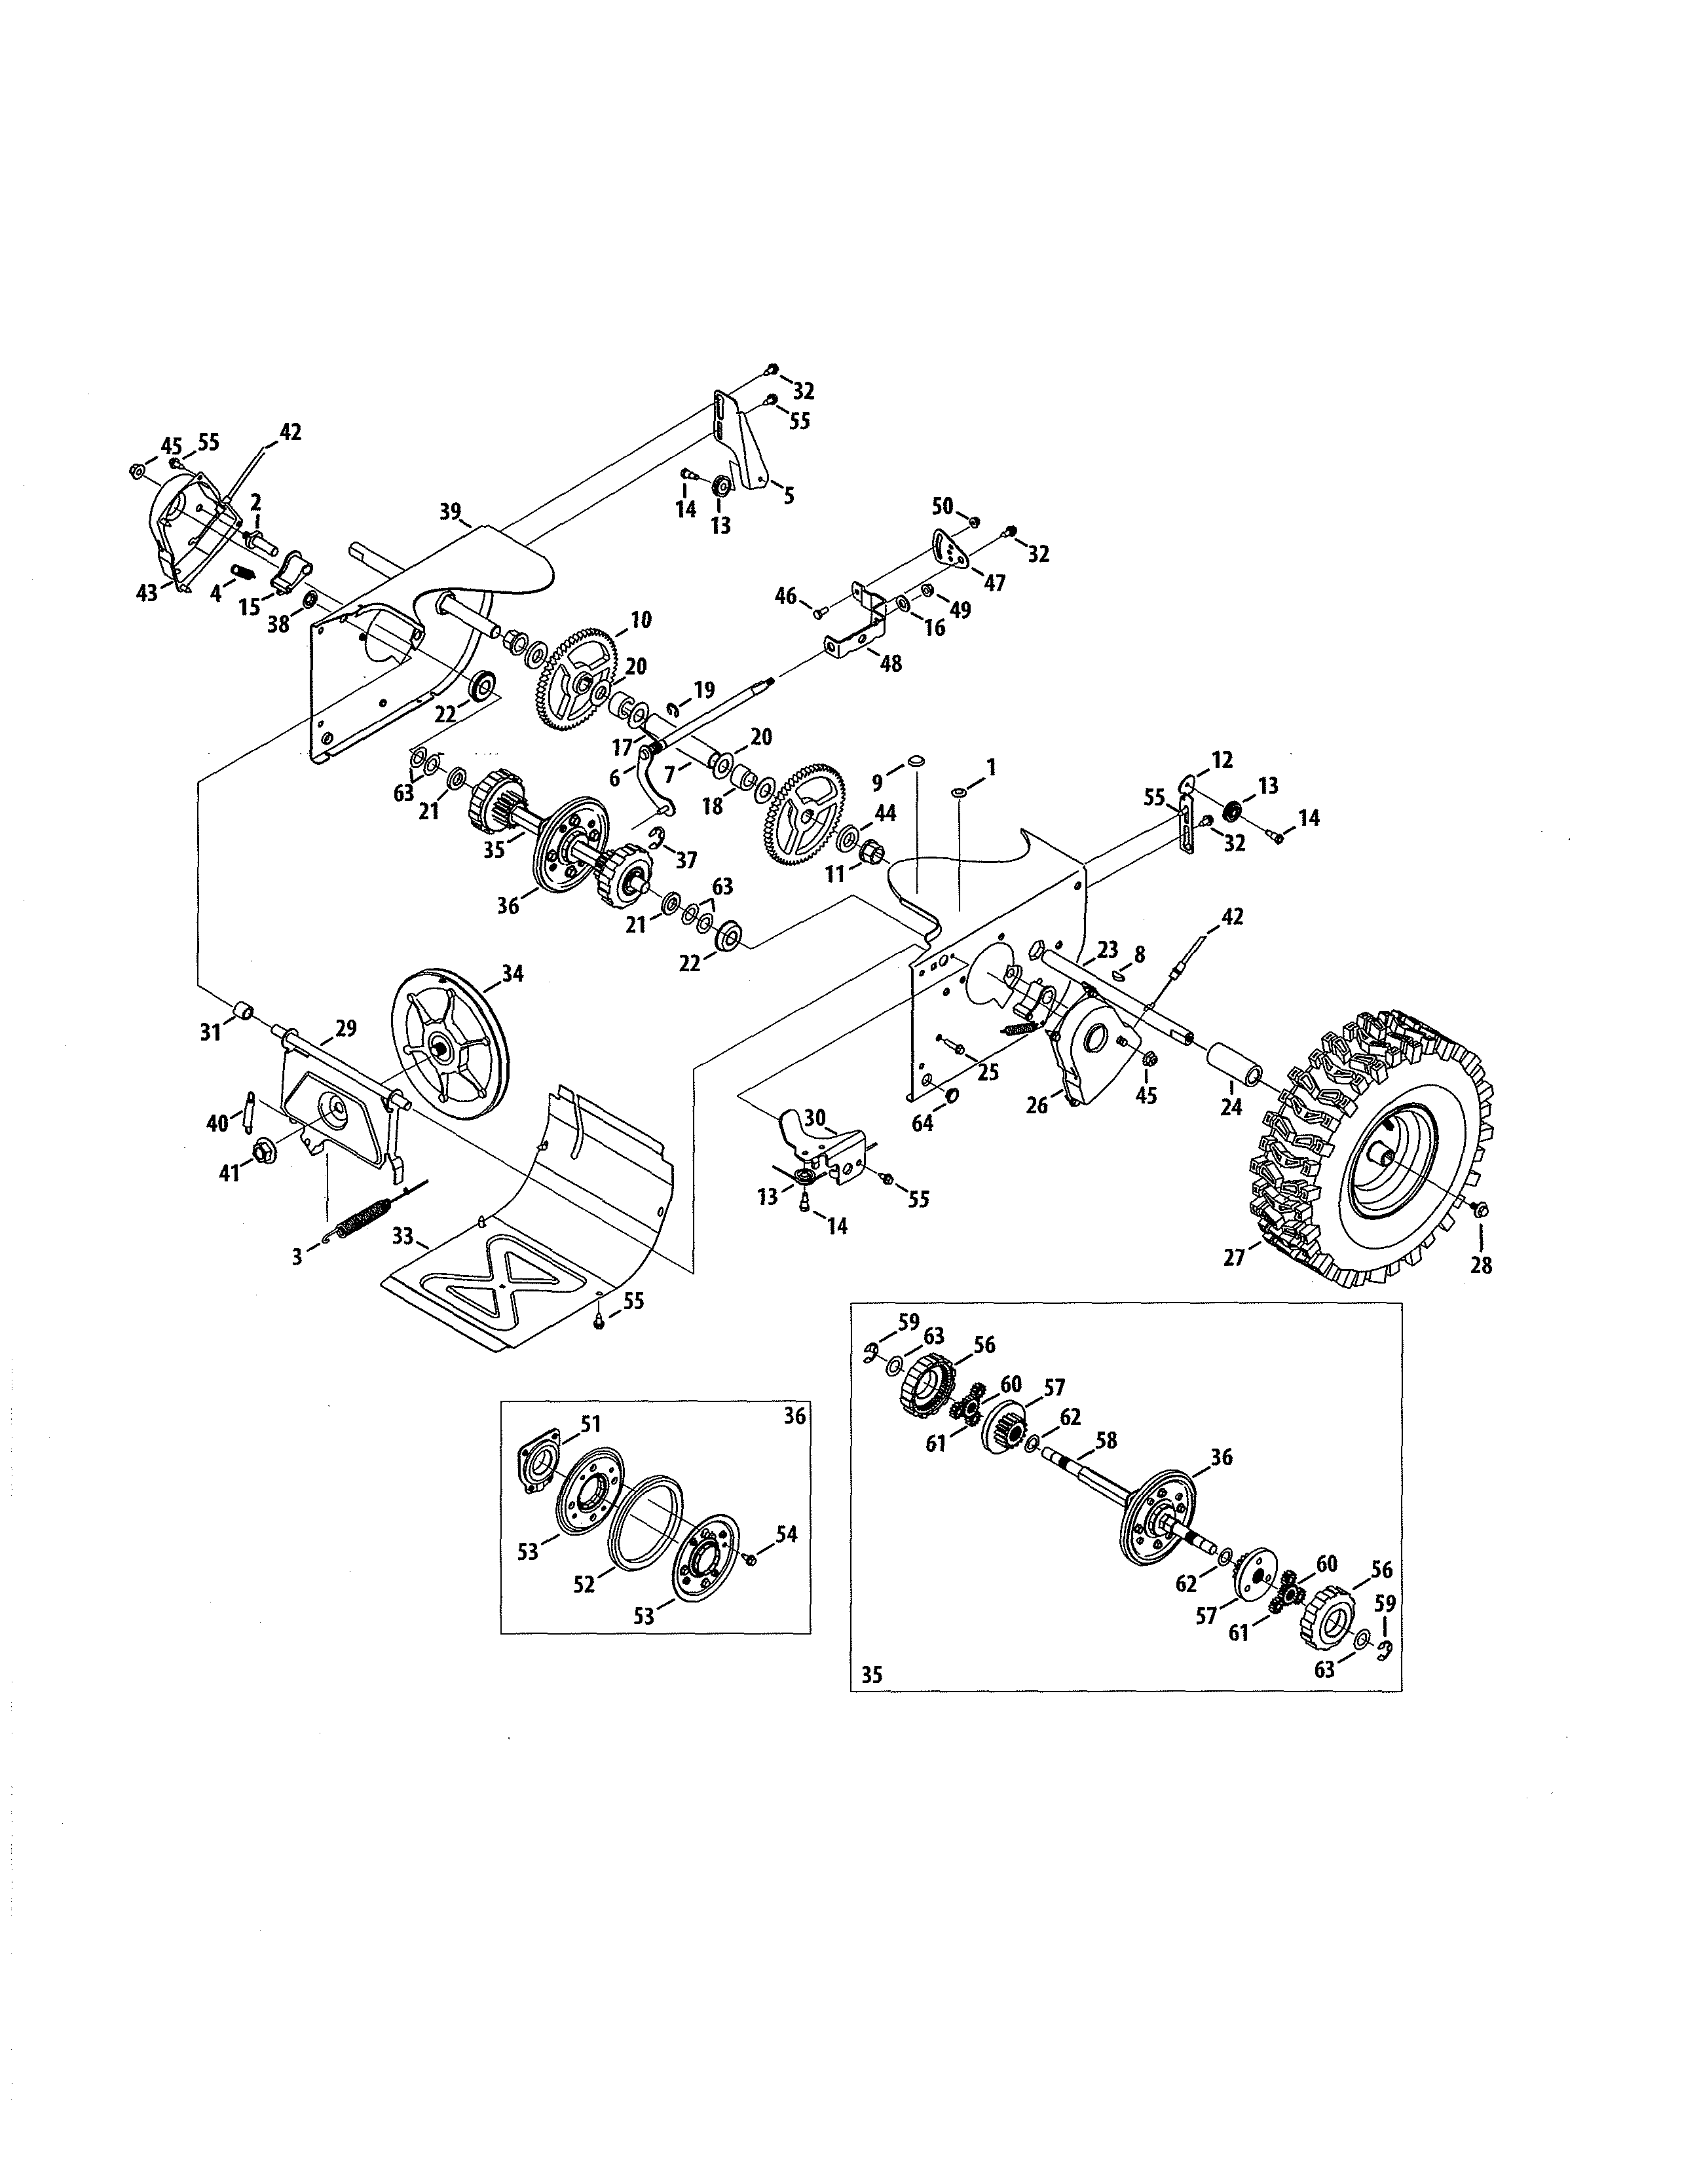 30 Craftsman Snowblower Parts Diagram